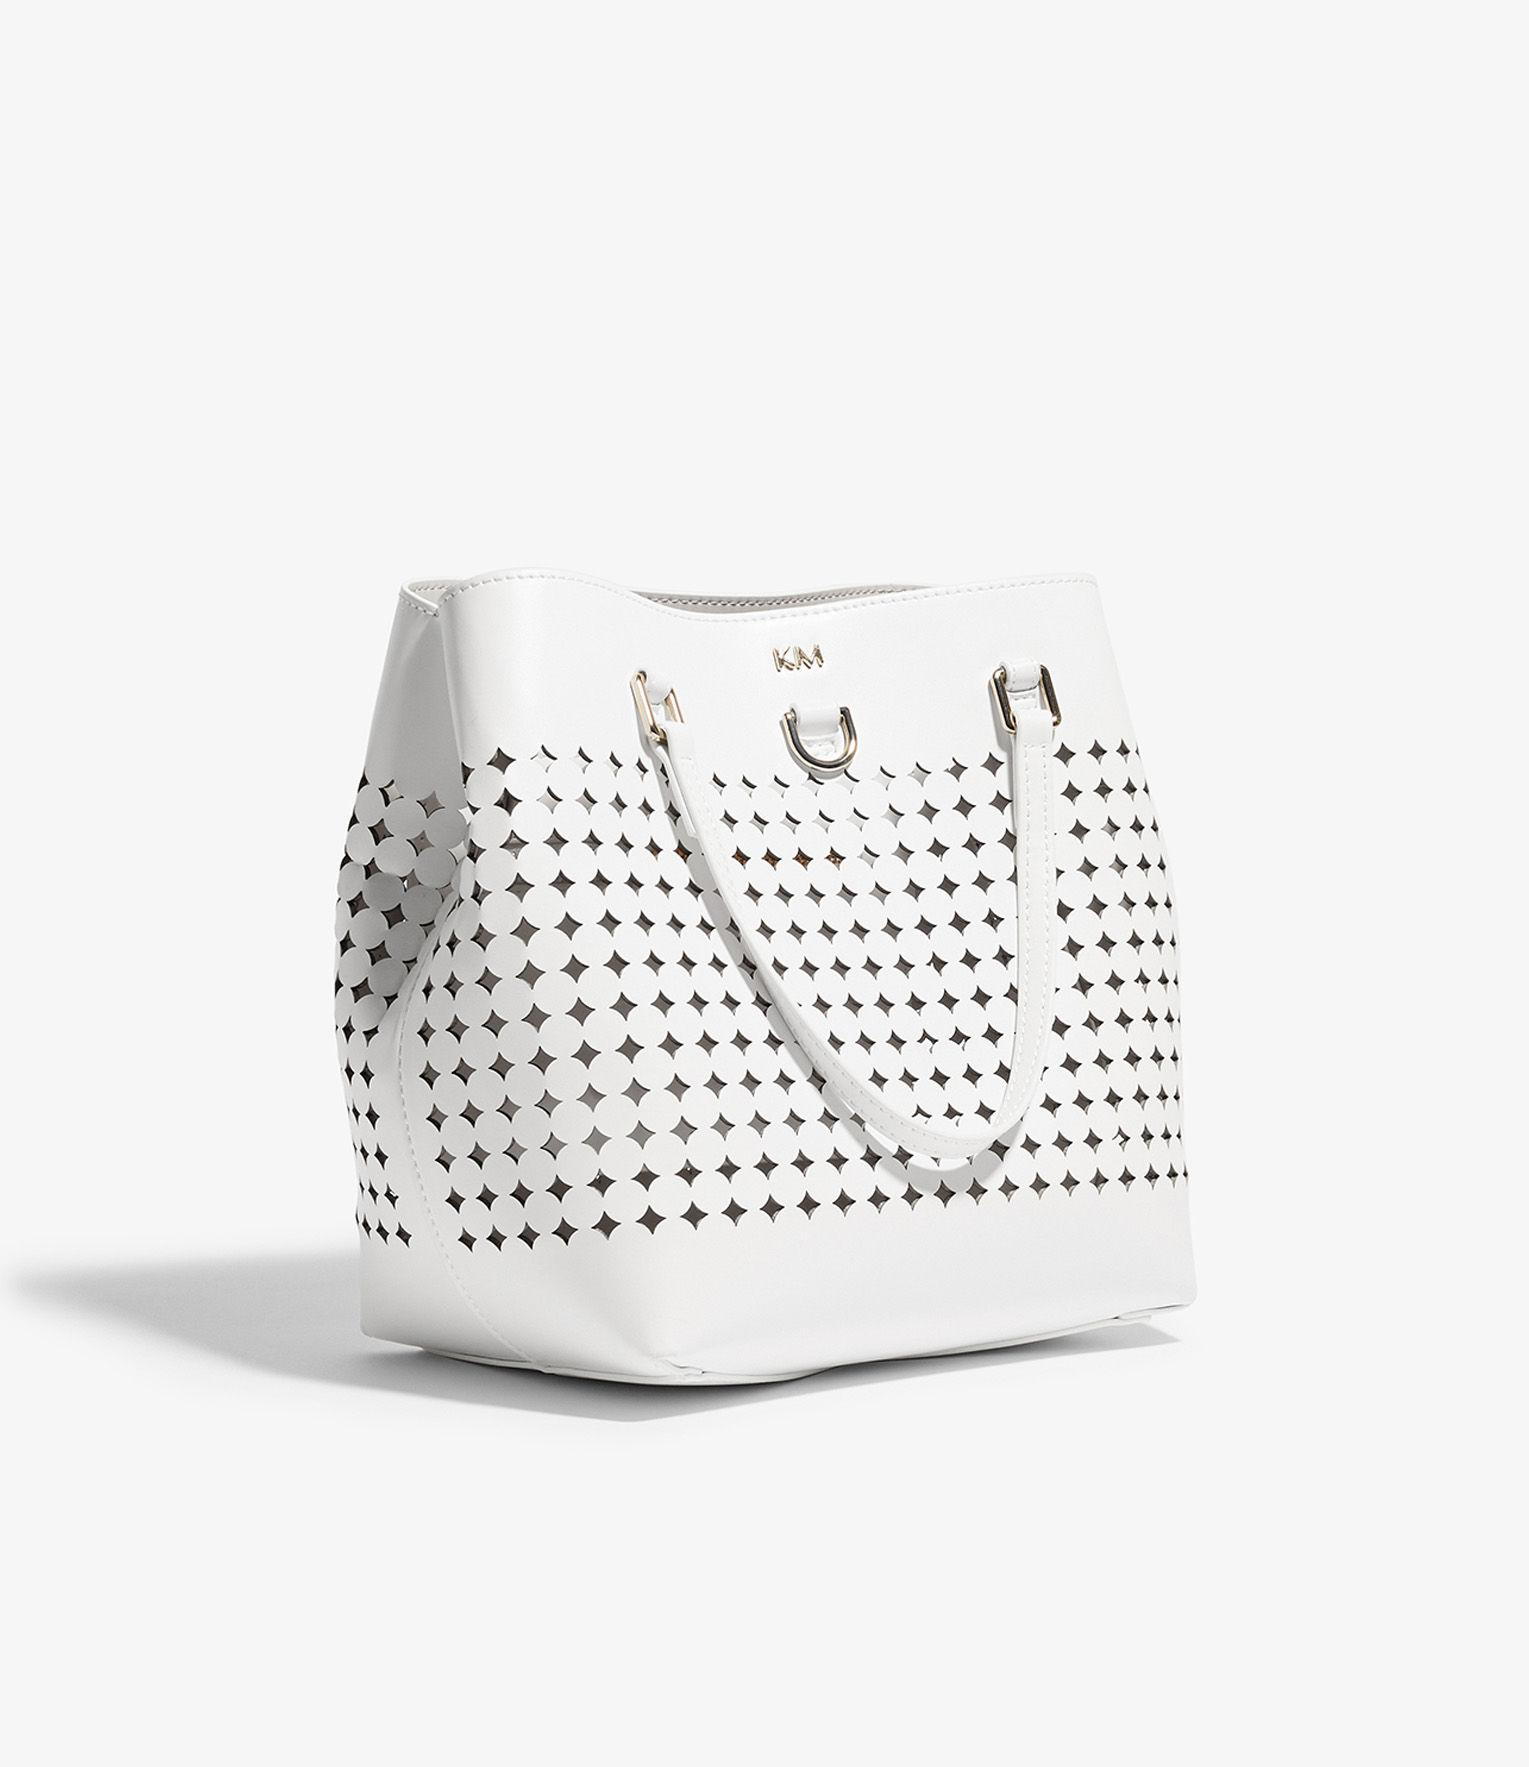 Karen Millen Leather Perforated Mini Tote Bag in White